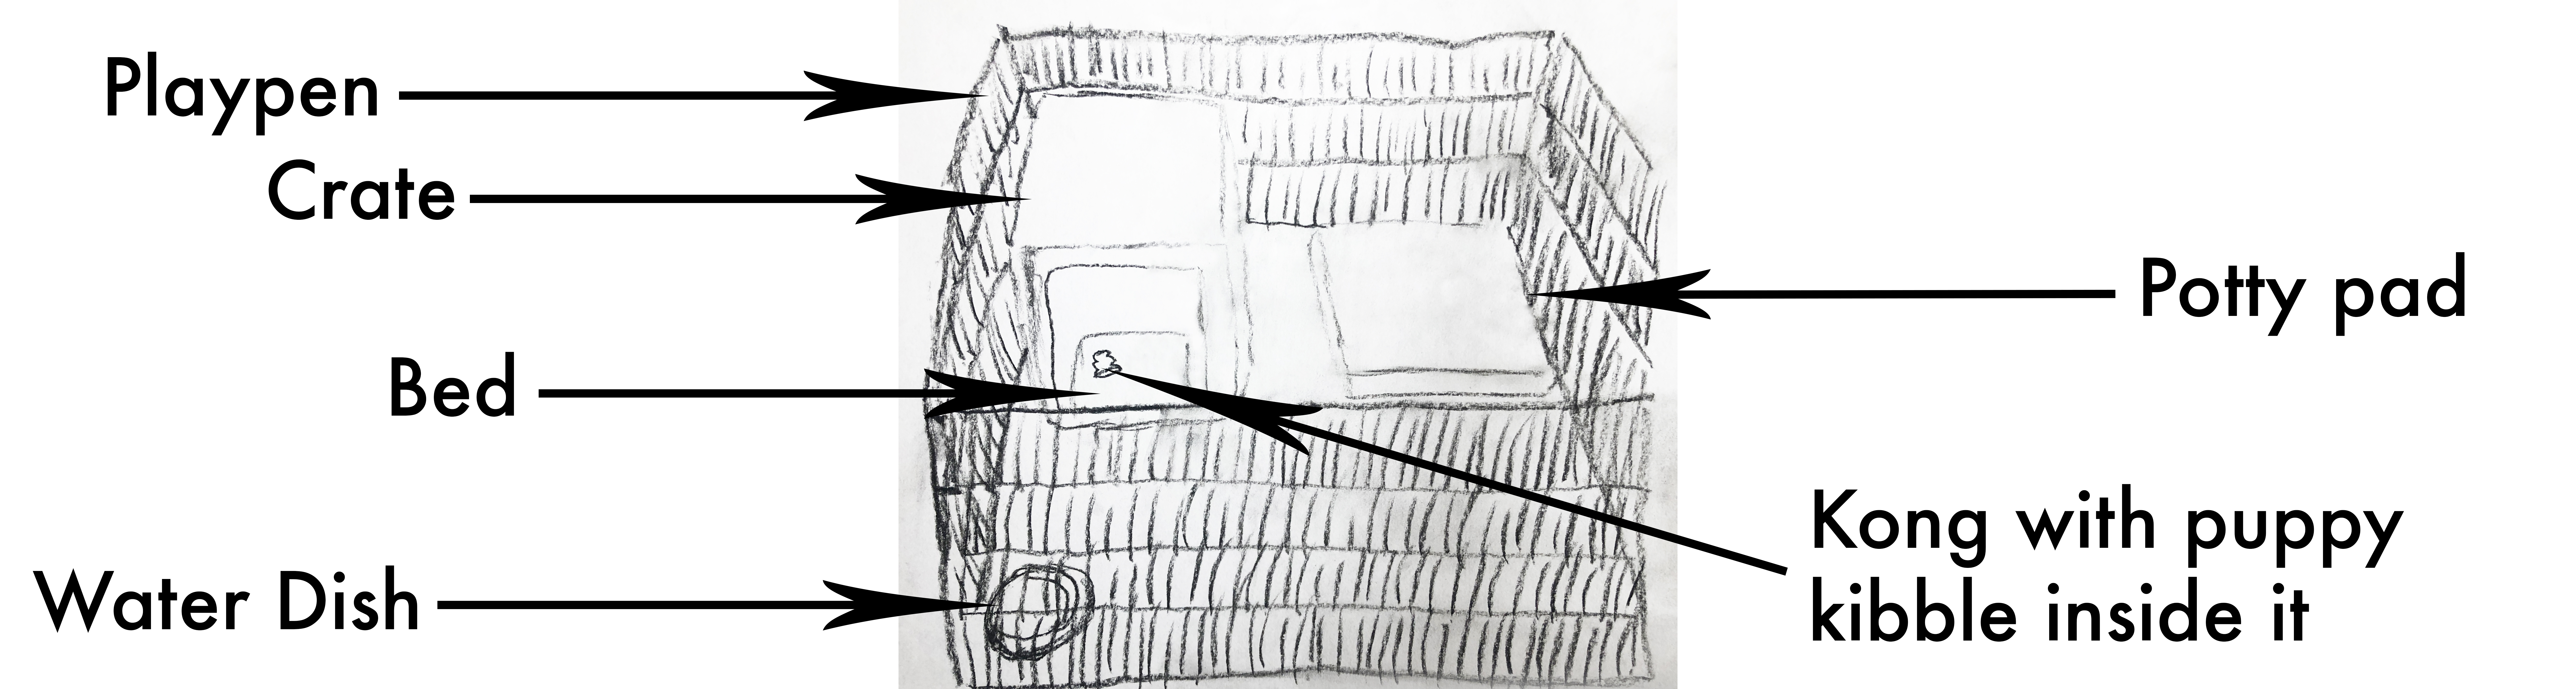 Suggested crate setup for a puppy